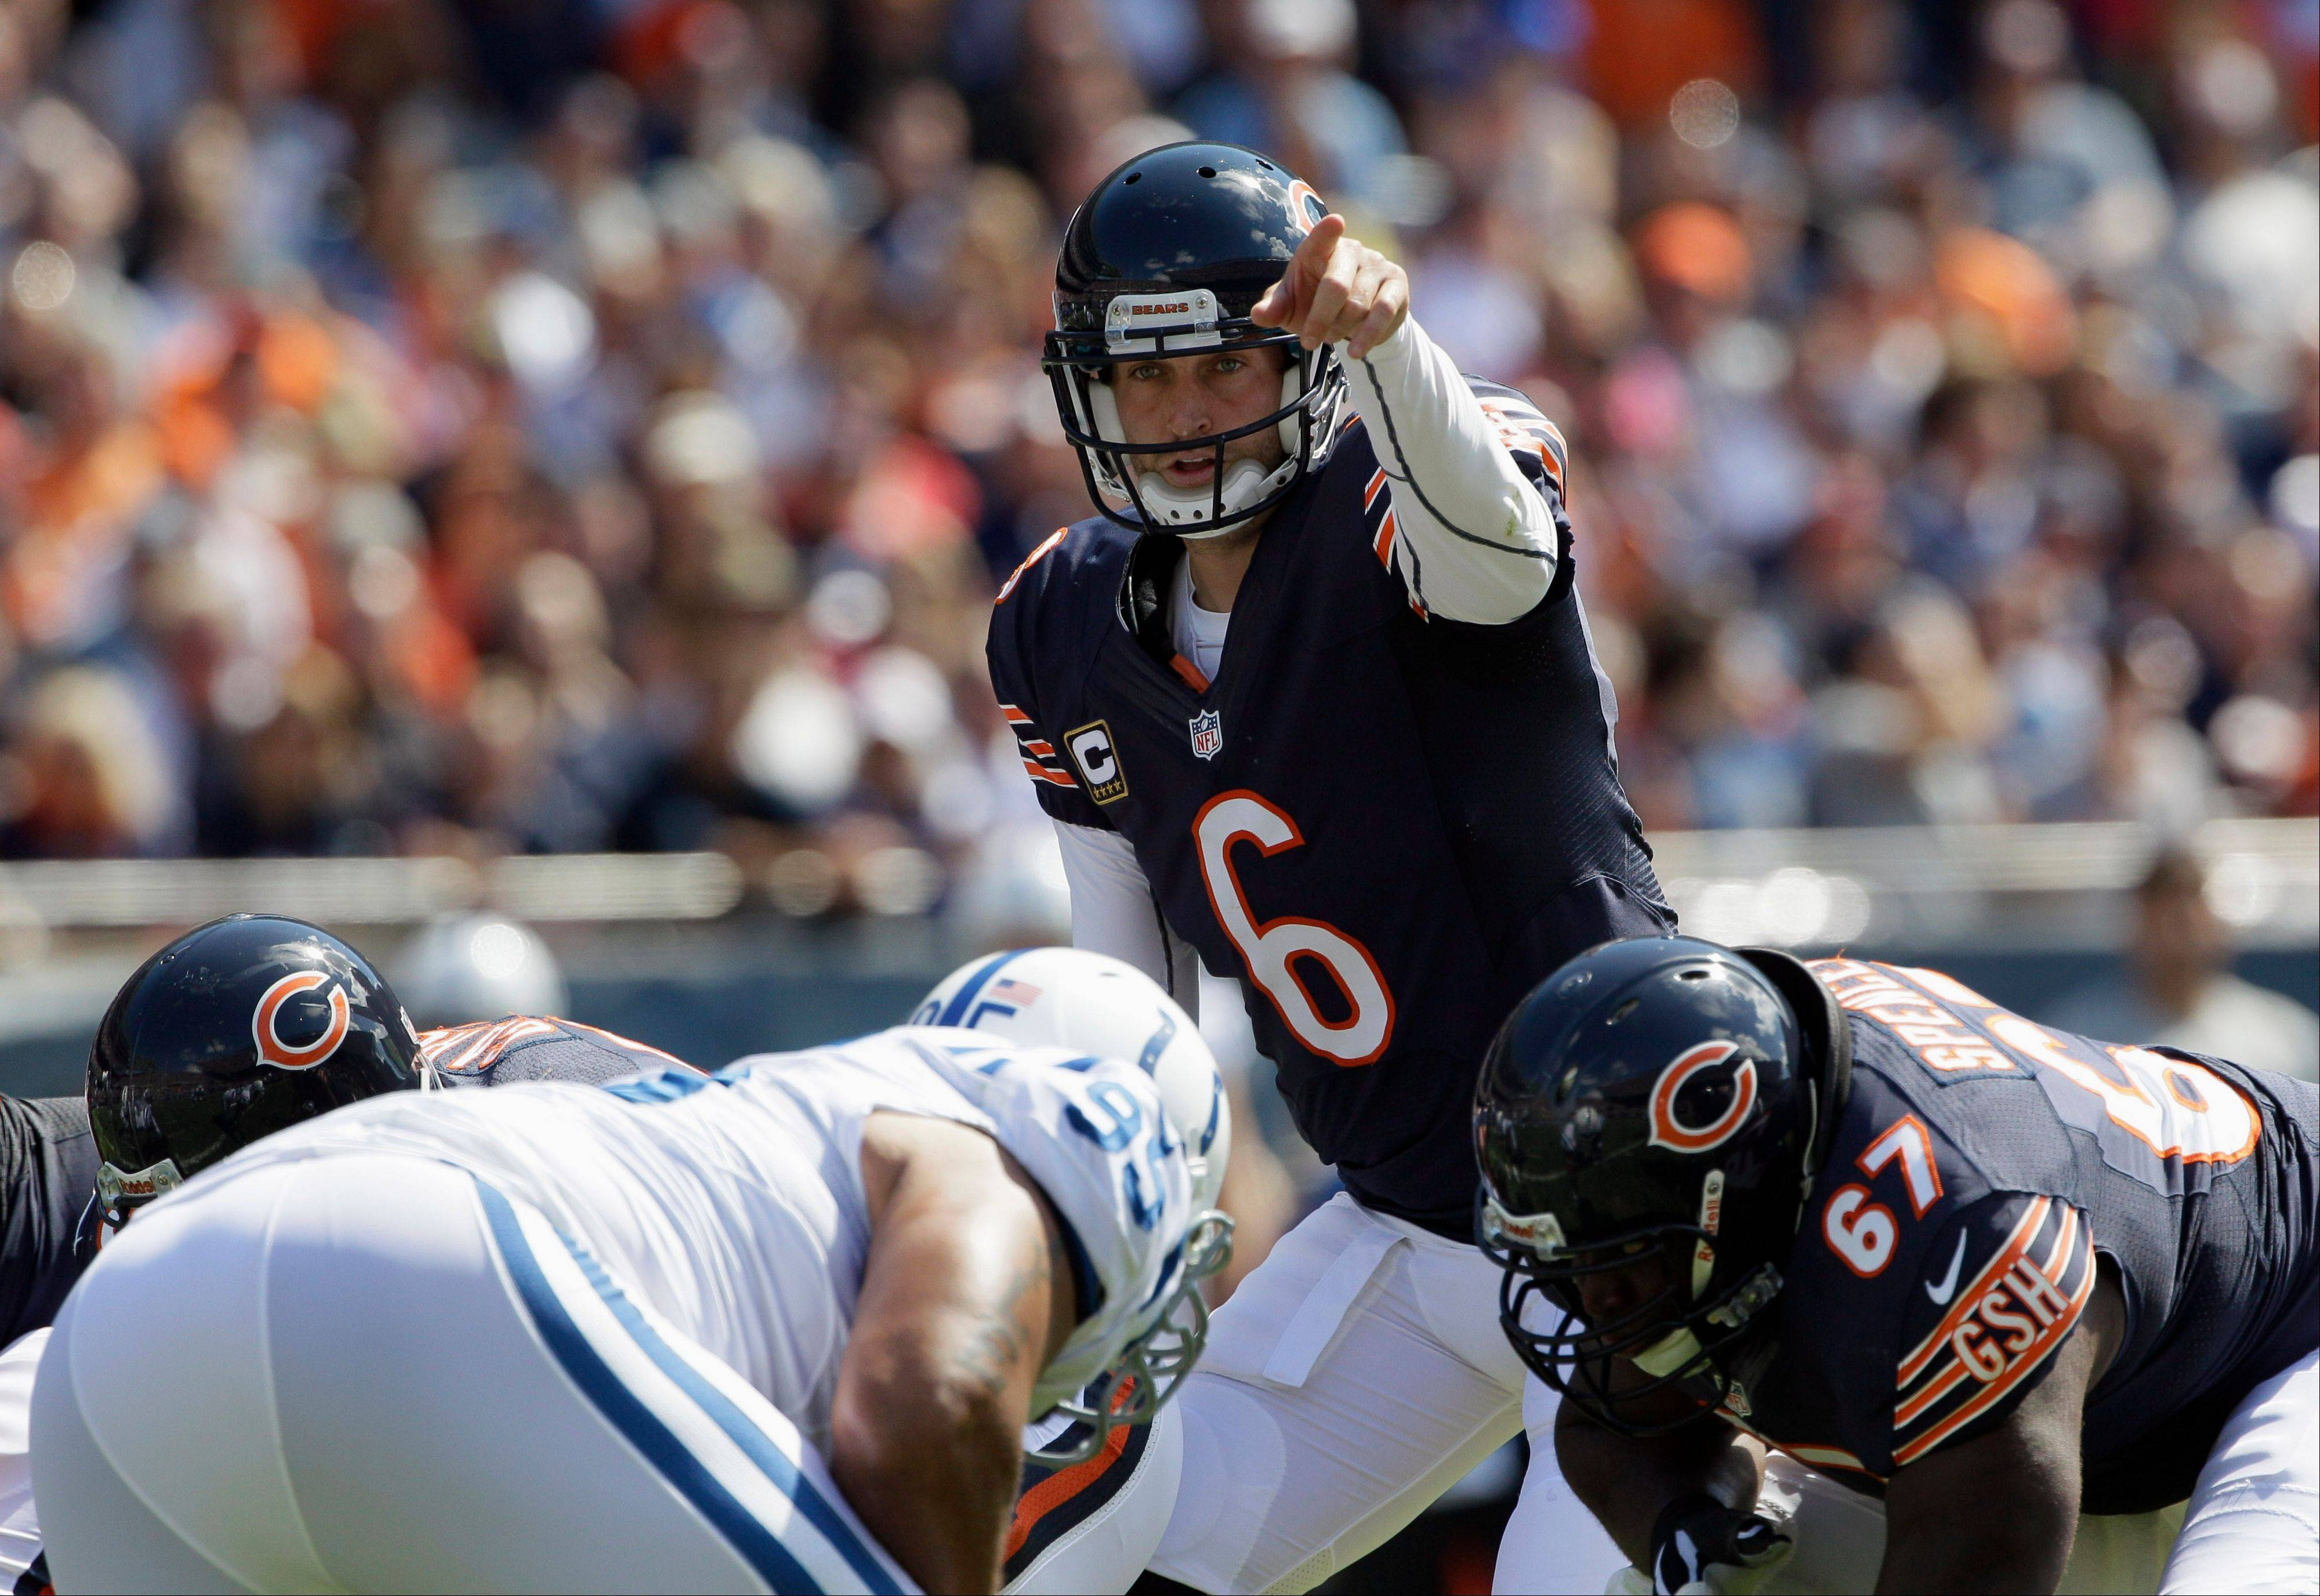 Chicago Bears quarterback Jay Cutler (6) points as he calls a play from the line of scrimmage against the Indianapolis Colts during the first half of an NFL football game in Chicago, Sunday, Sept. 9, 2012.